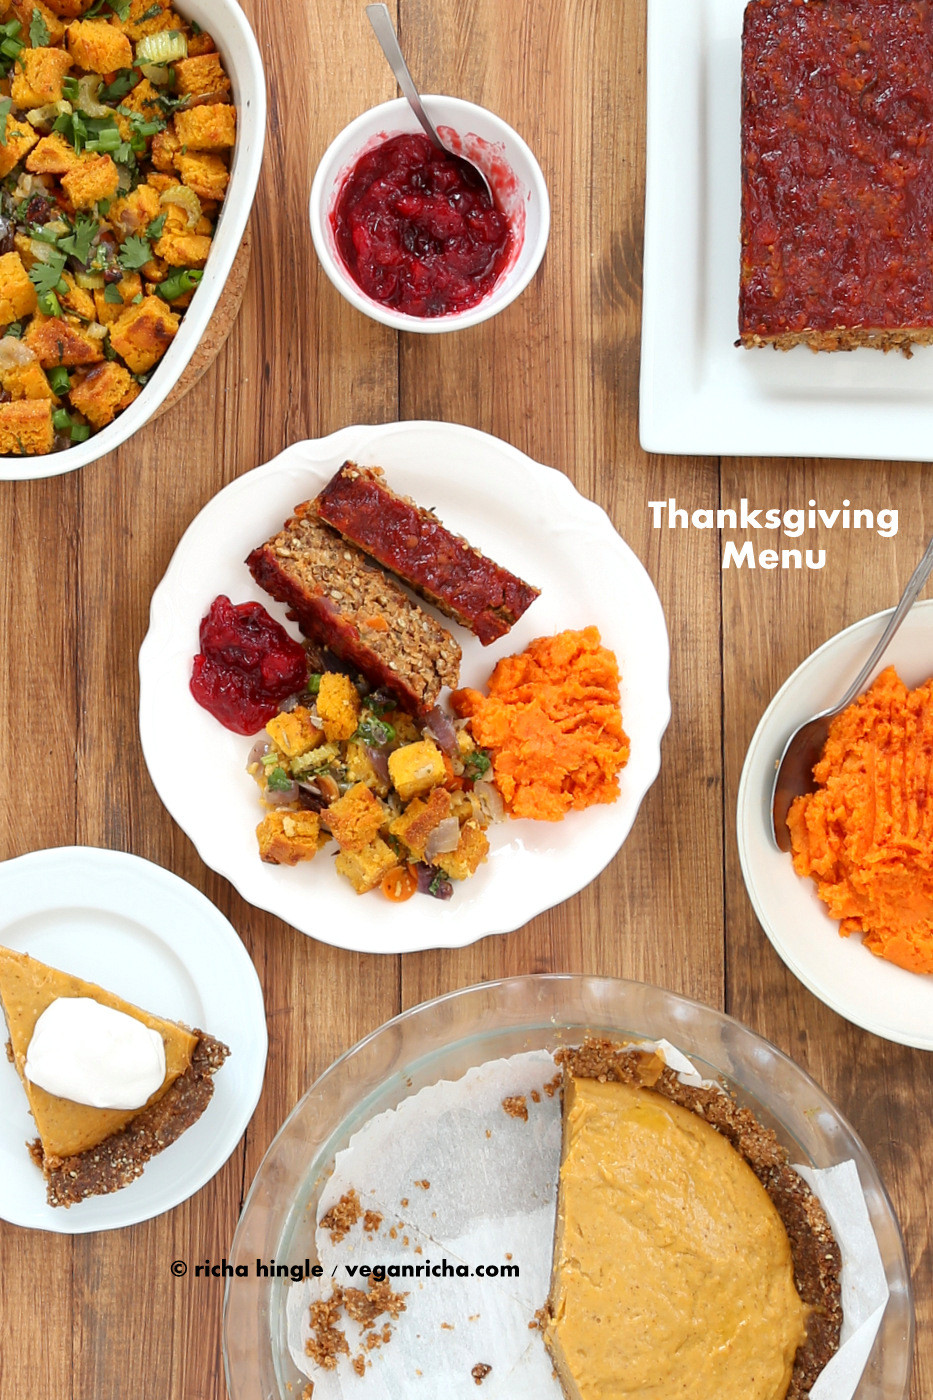 Vegetarian Thanksgiving Loaf  80 Vegan Thanksgiving Recipes 2014 Vegan Richa